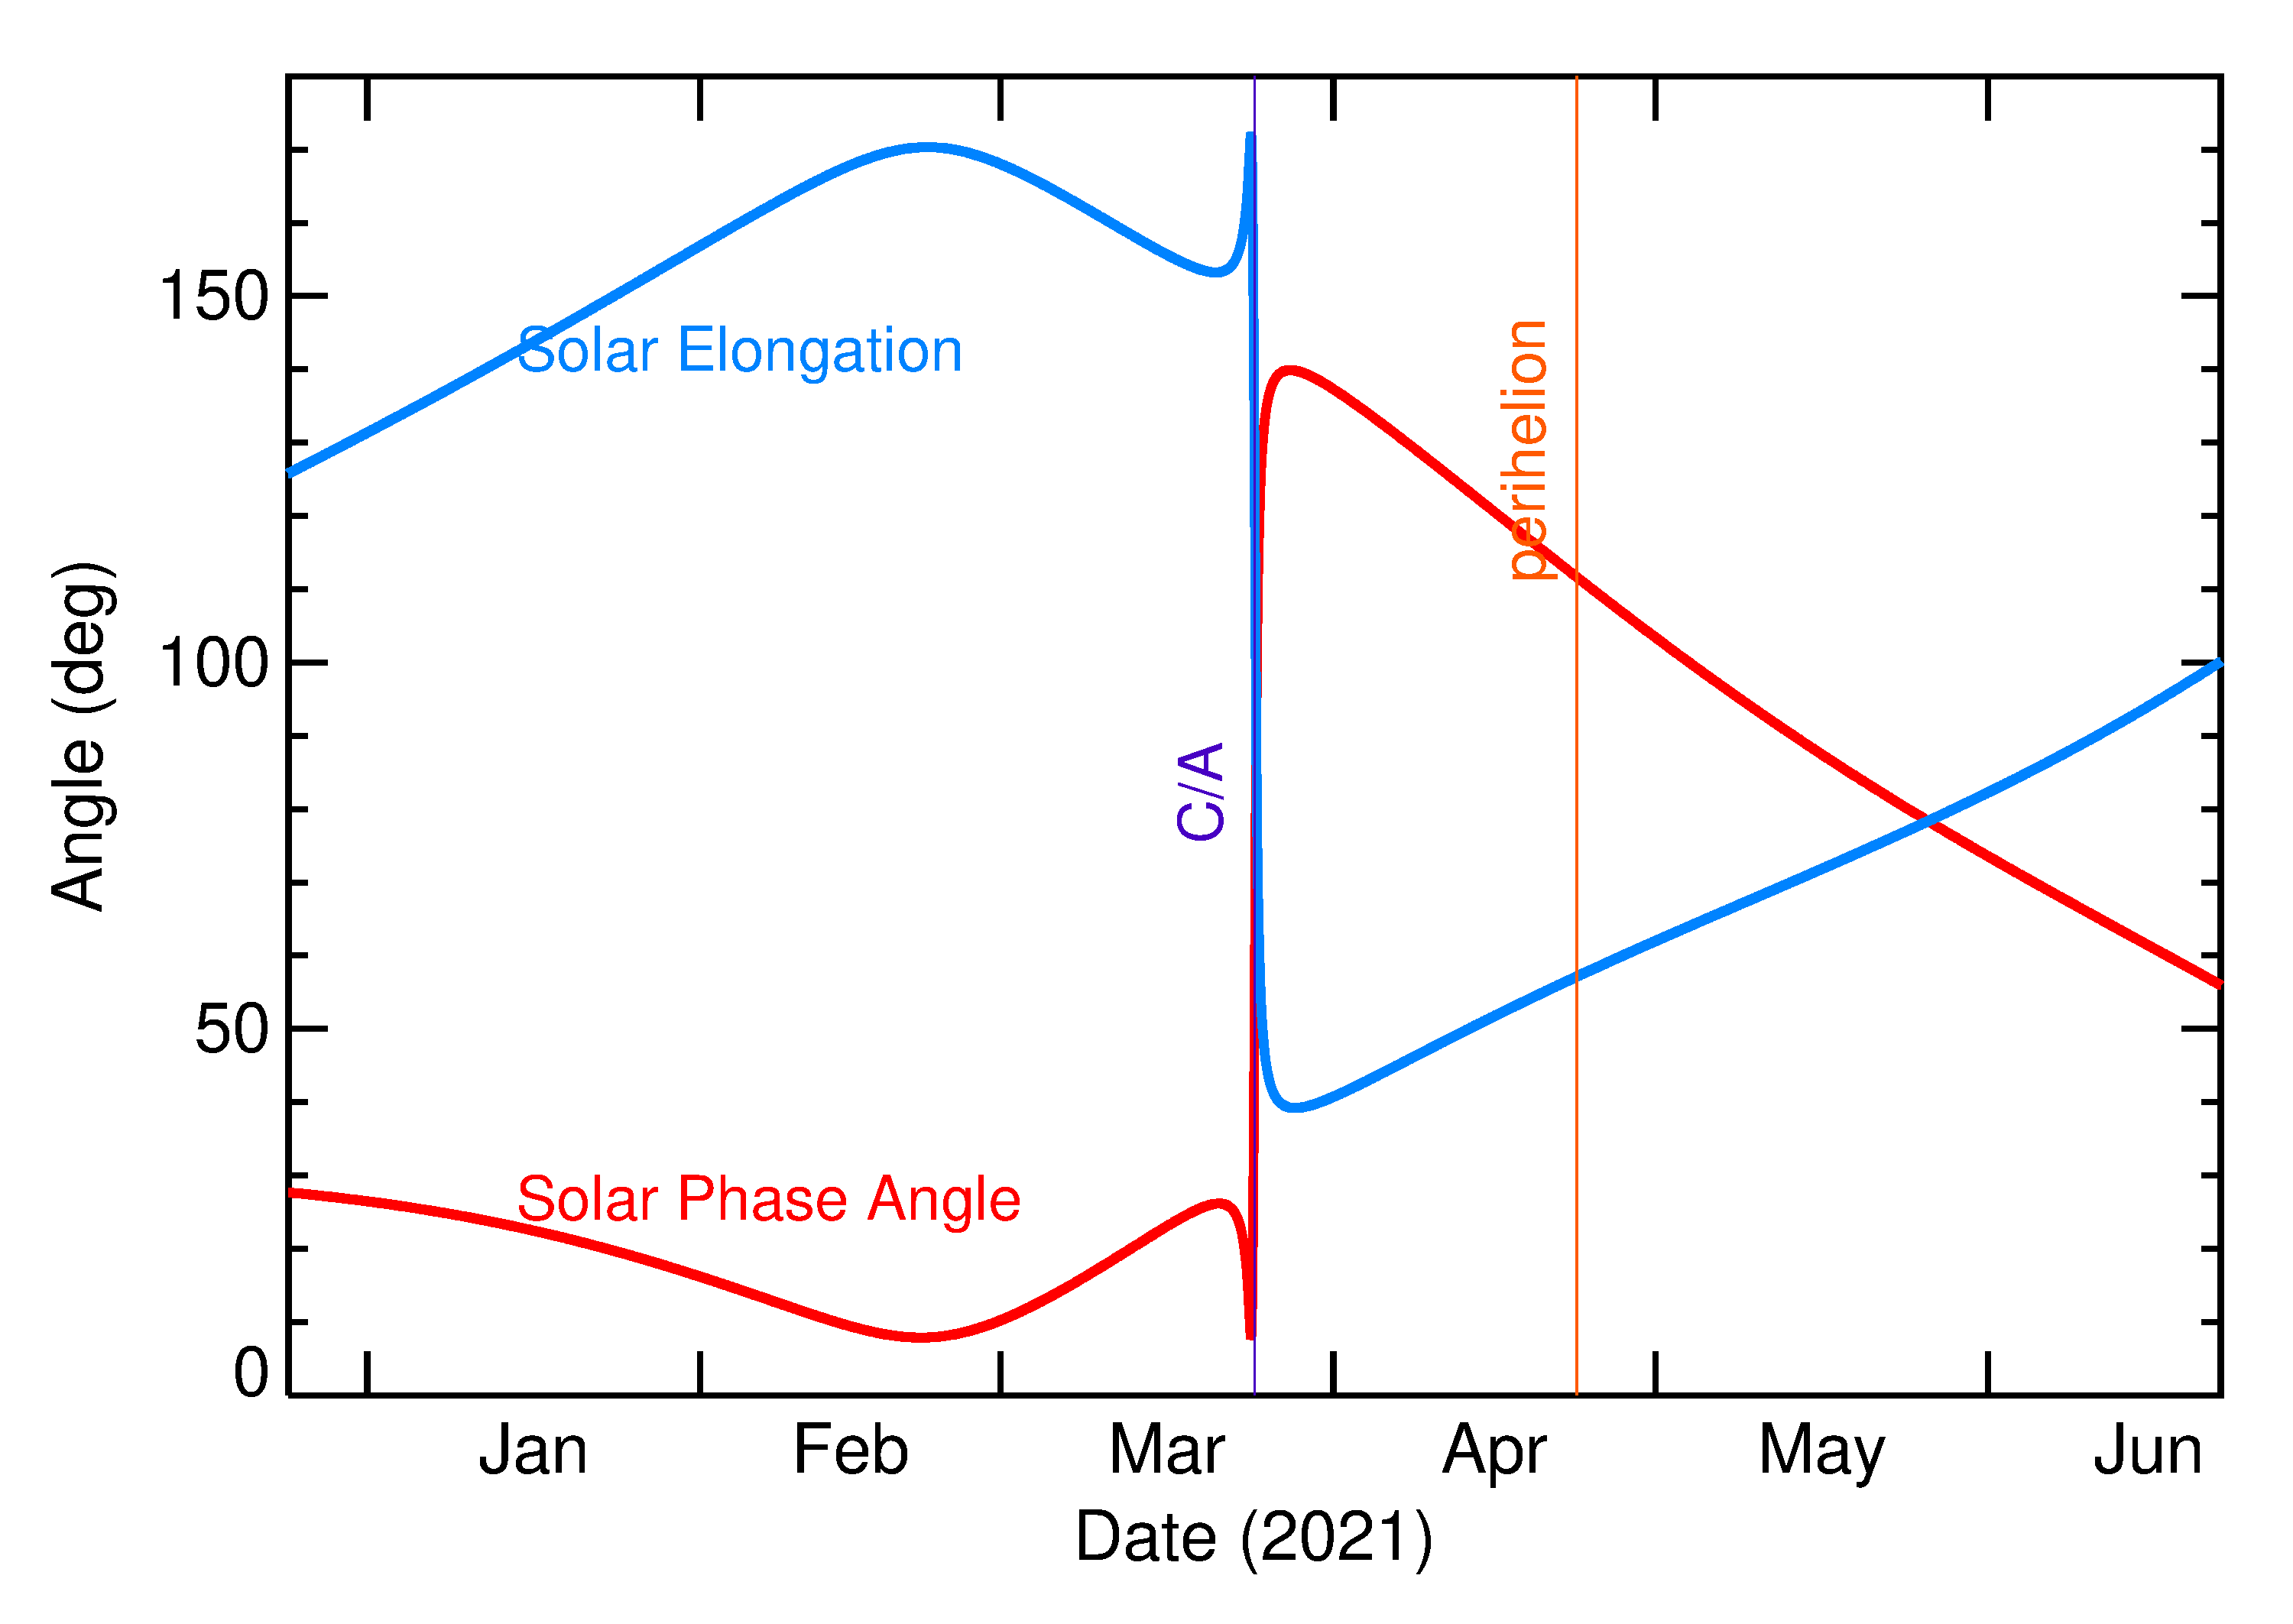 Solar Elongation and Solar Phase Angle of 2021 FH in the months around closest approach